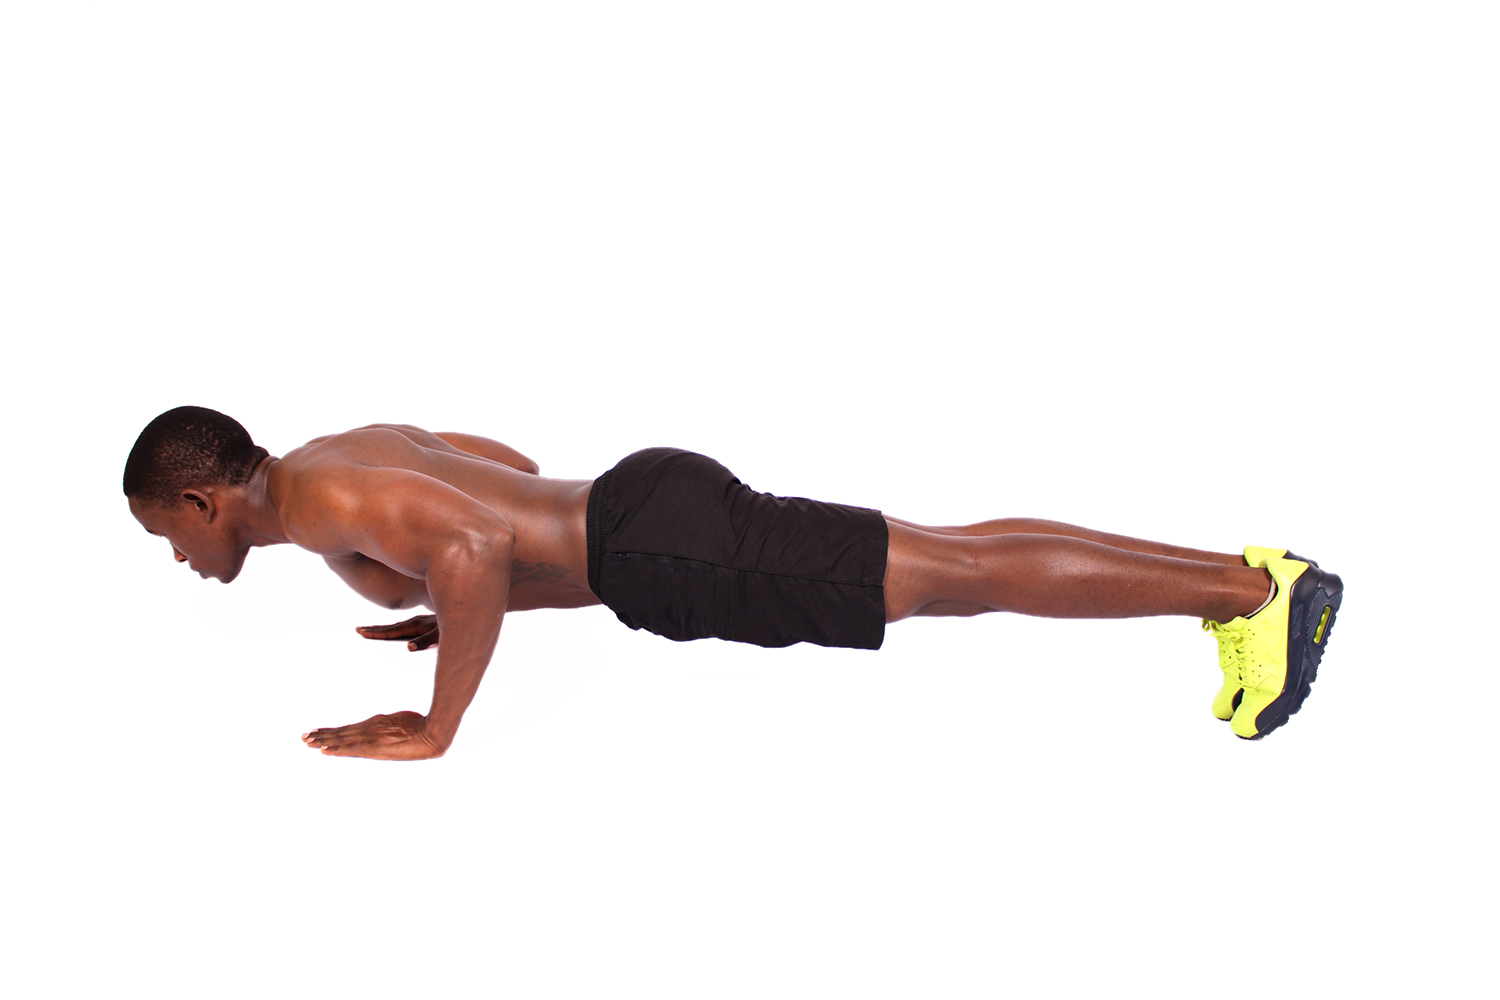 Shirtless Muscular Man Doing Push Ups on White Background